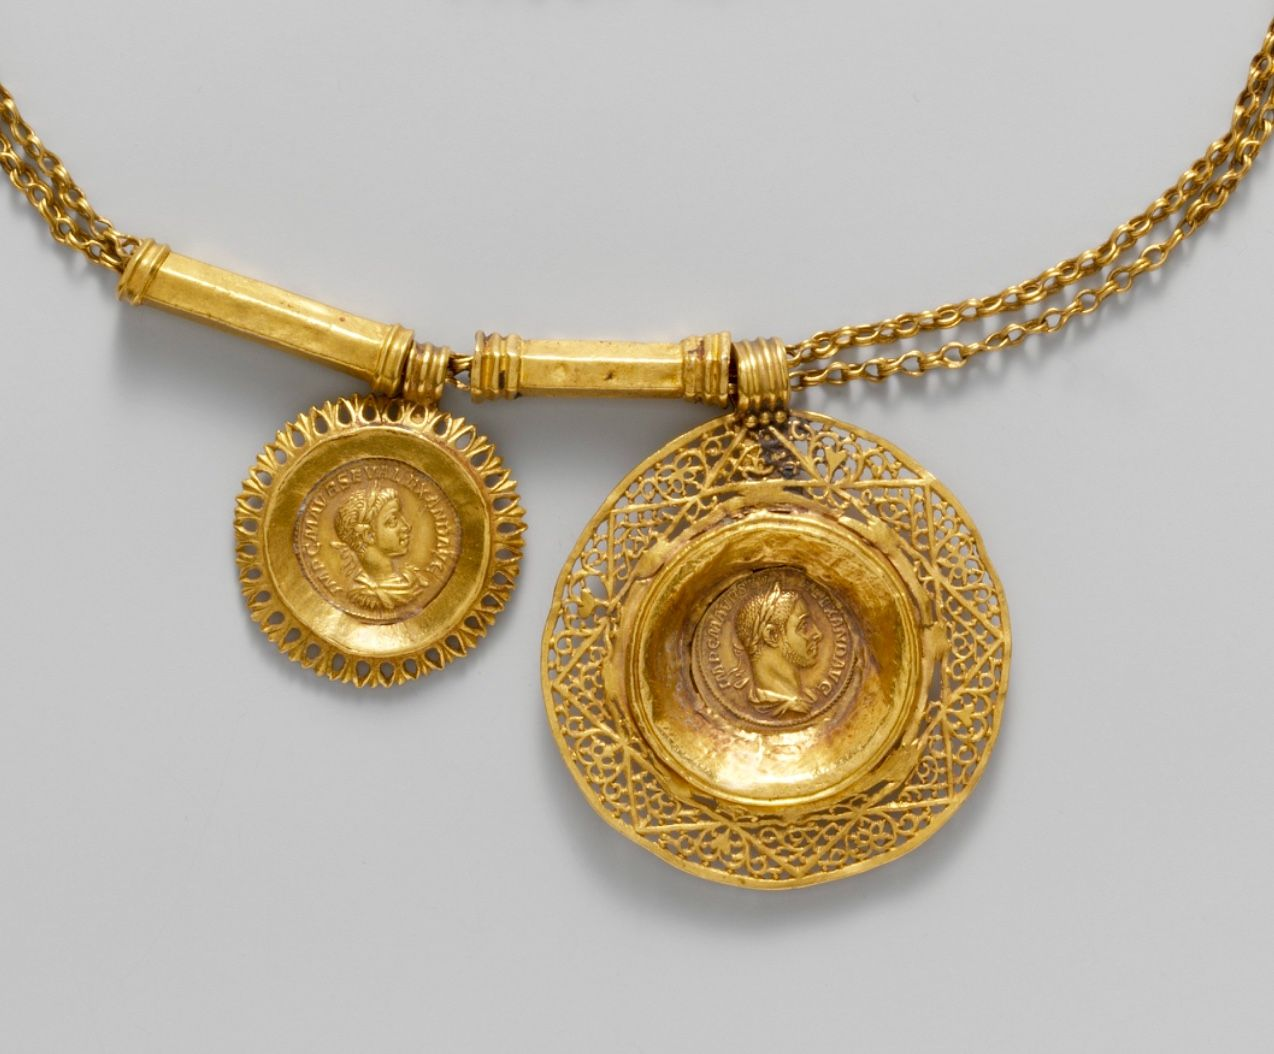 yg nek coin necklace ethical com roman luxury maison tali products mode talisman de lucky